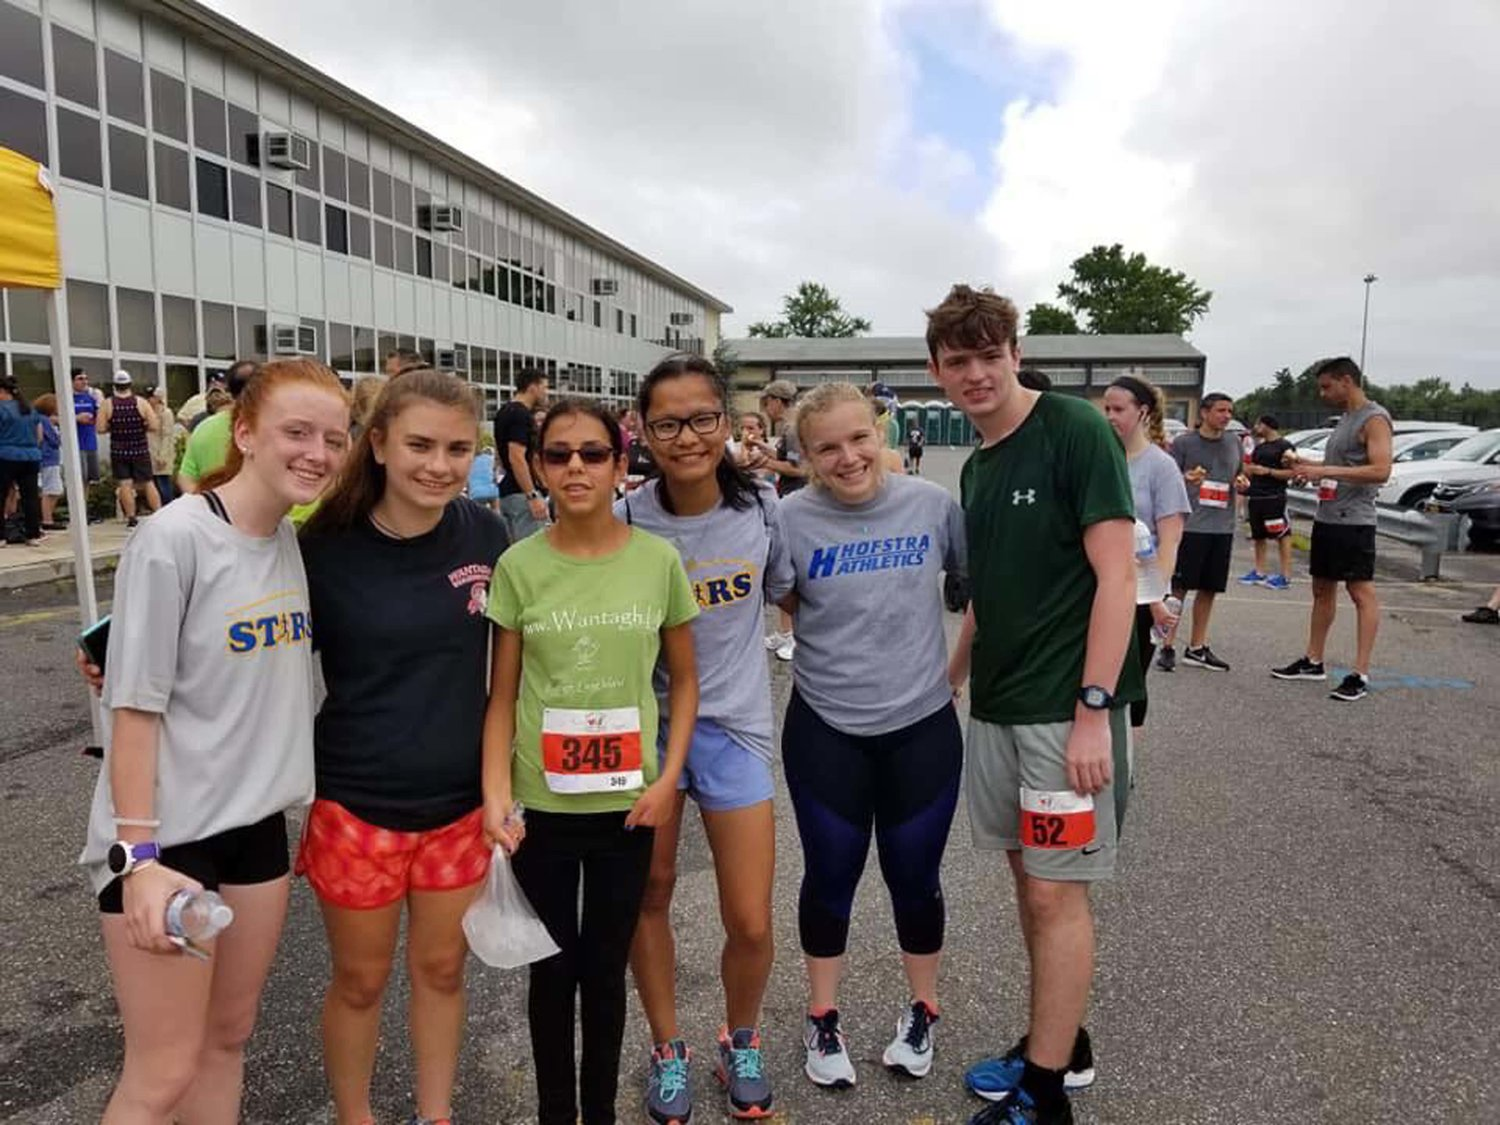 Some of The Shooting Stars at the Heart and Sole 5K last July 22 at Plainview-Old Bethpage Middle School in Plainview.